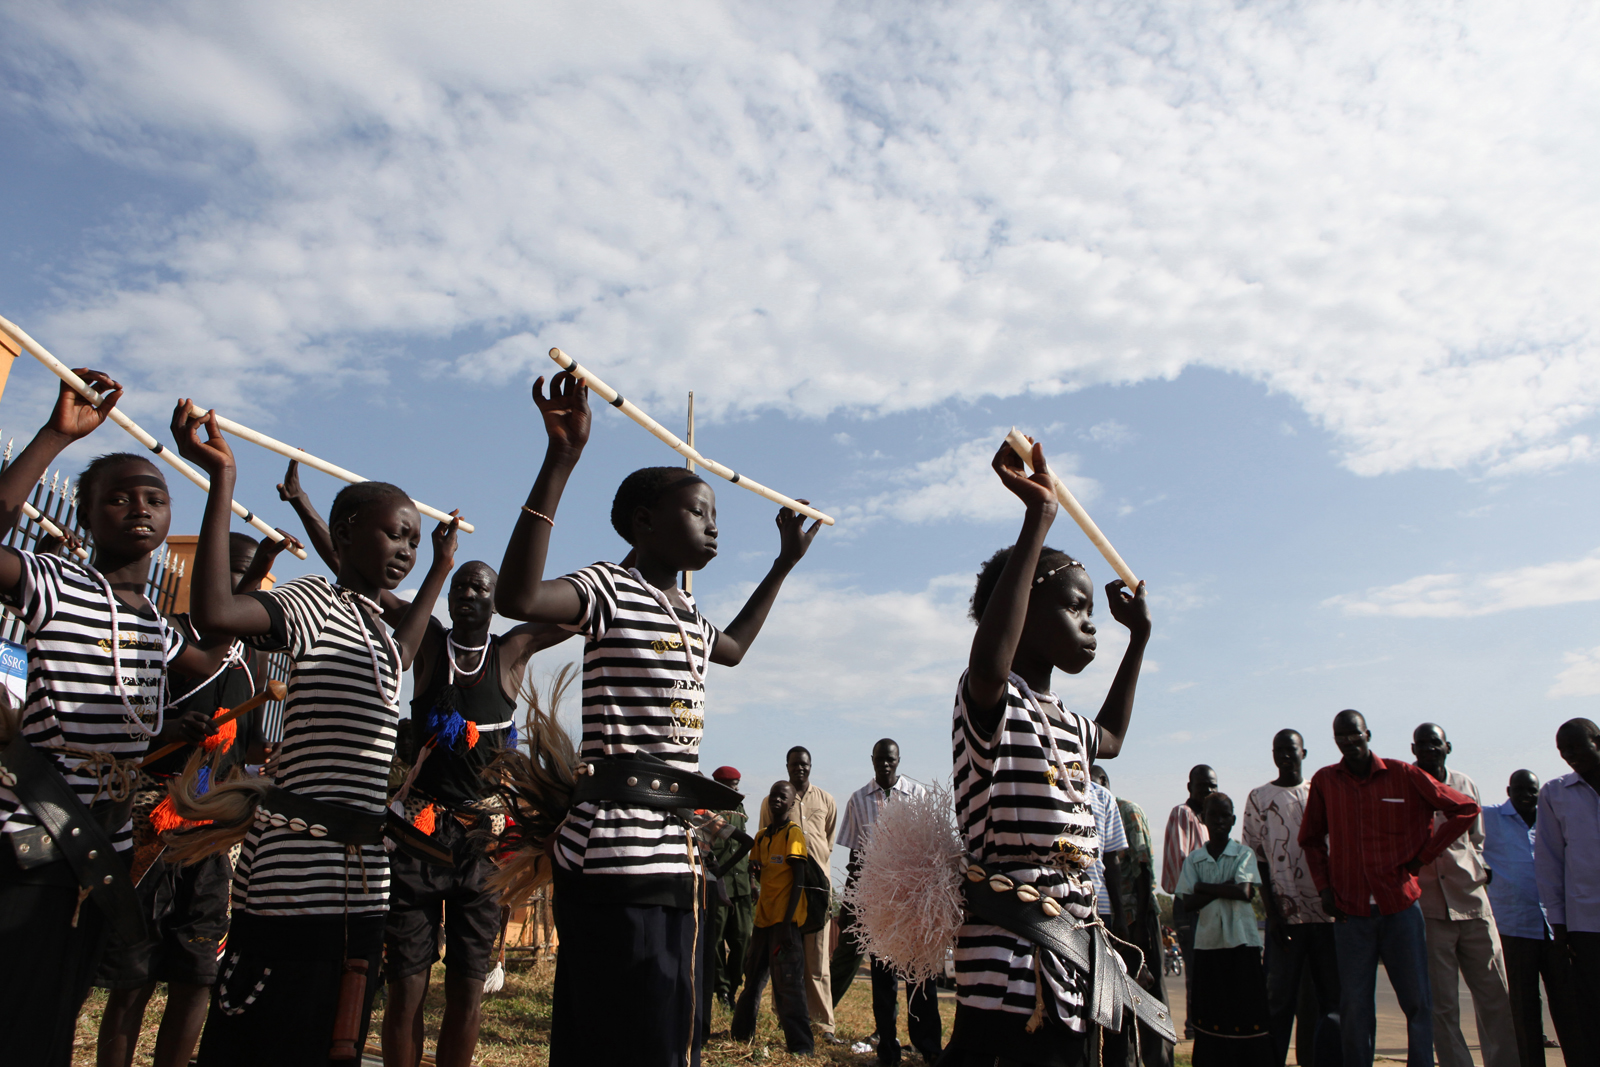 Nuer tribal dancers celebrate the launch of Voter Registration for the January 9th Referendum, on 15 November 2010 at the John Garang Memorial site in Juba, South Sudan. The Referendum is an opportunity for the South Sudanese people to cast their vote for self-determination, and either stay united with the Republic of Sudan or secede and form their own state. After independence on July 9, 2011, South Sudan became the 54th African nation.